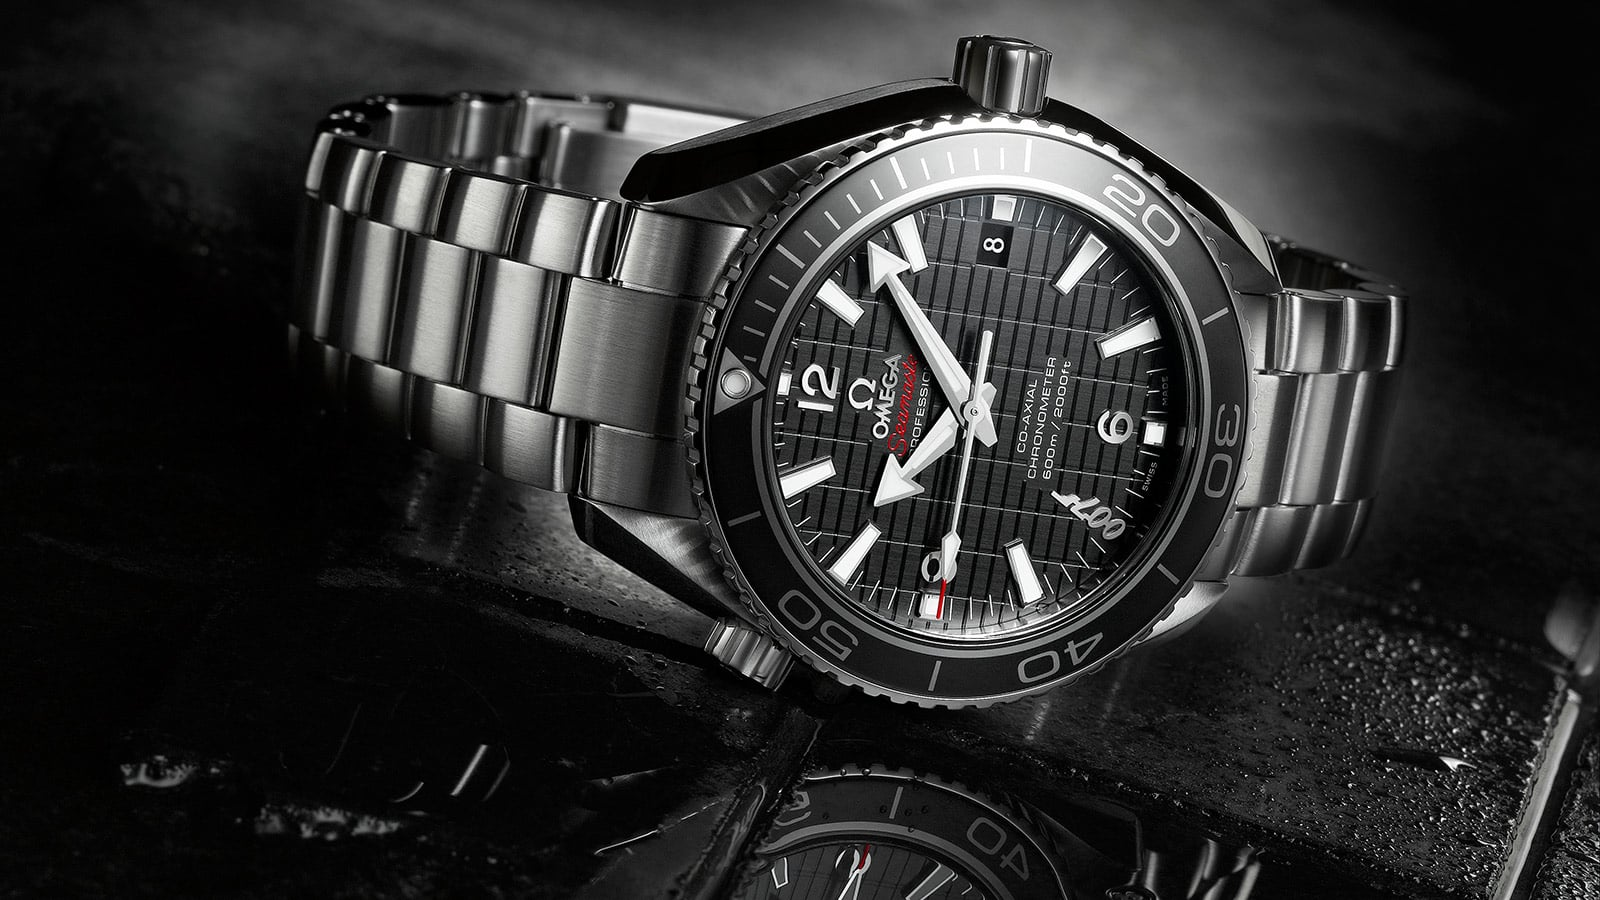 OMEGA and James Bond : a beautiful friendship | OMEGA® 歐米茄與占士邦:友誼永固 | OMEGA® - 投影片1: 6 - 9887